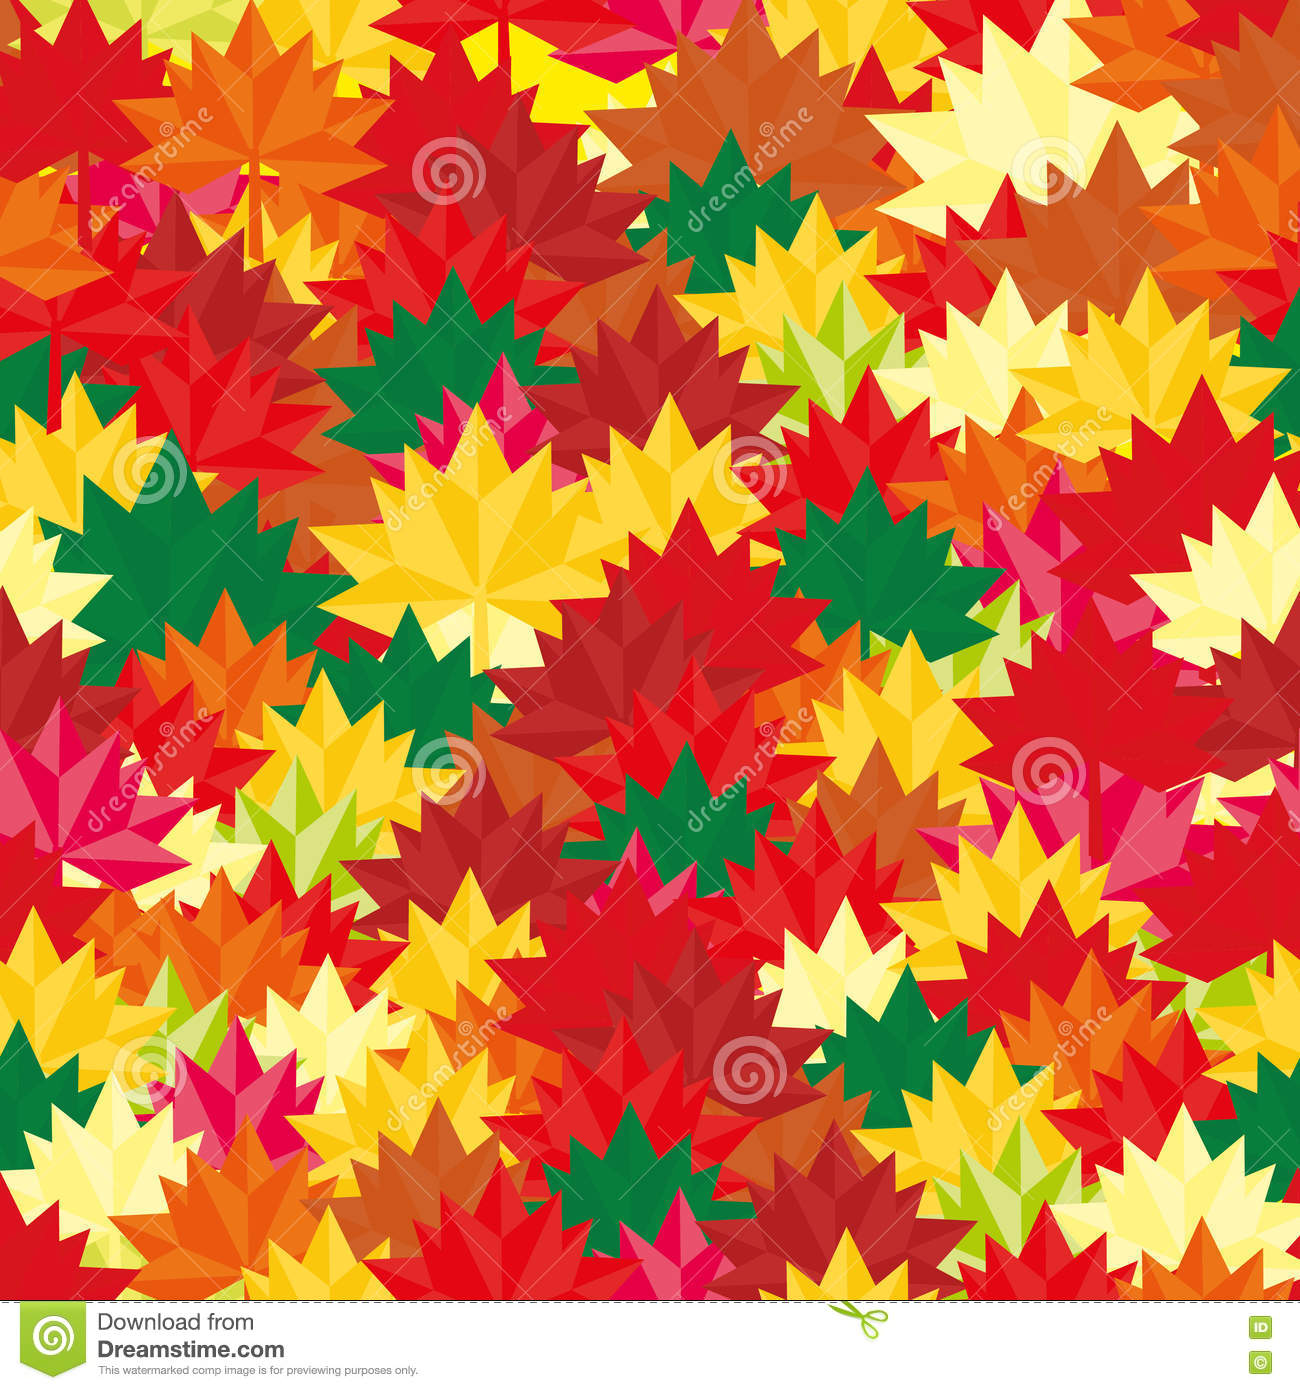 Autumn Background Abstract Leaves Square Fall Pattern For